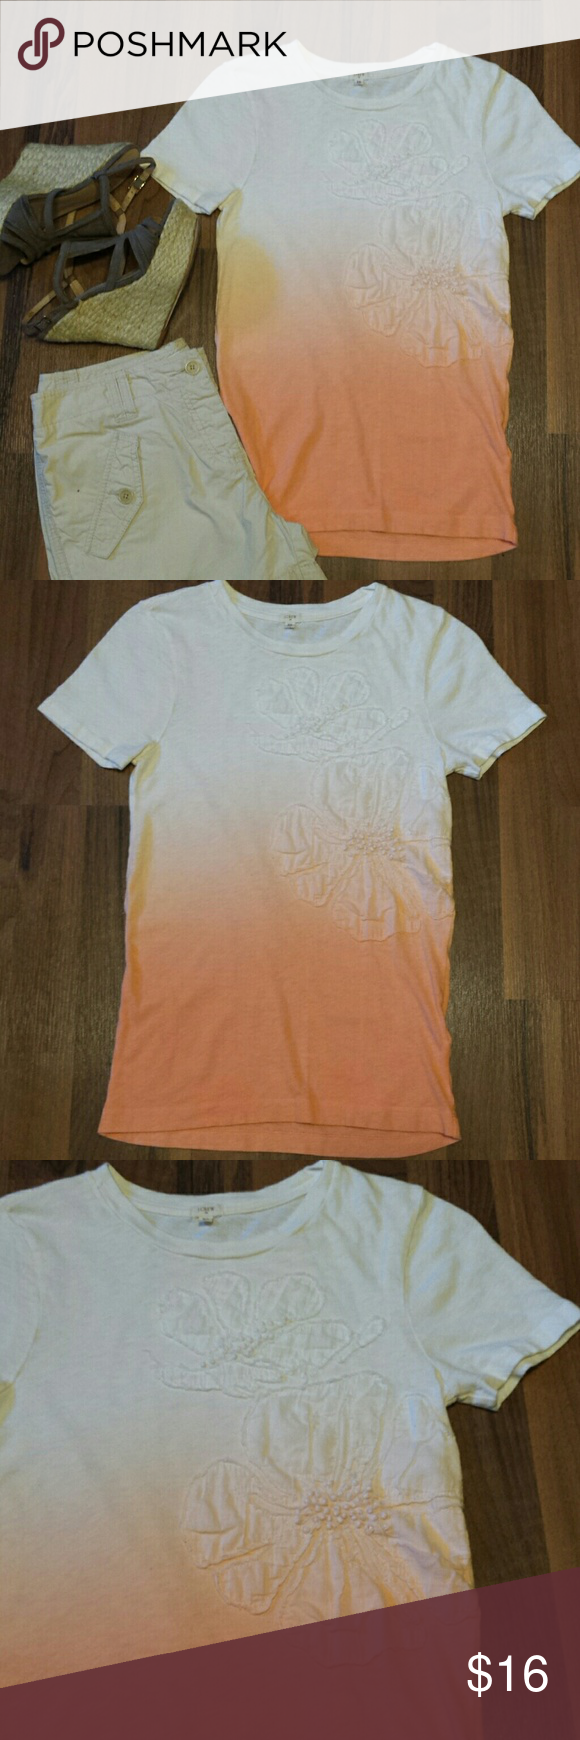 4f380be71e1  J. Crew  Ombré Tee This cute creamsicle colored ombré tshirt is so cute